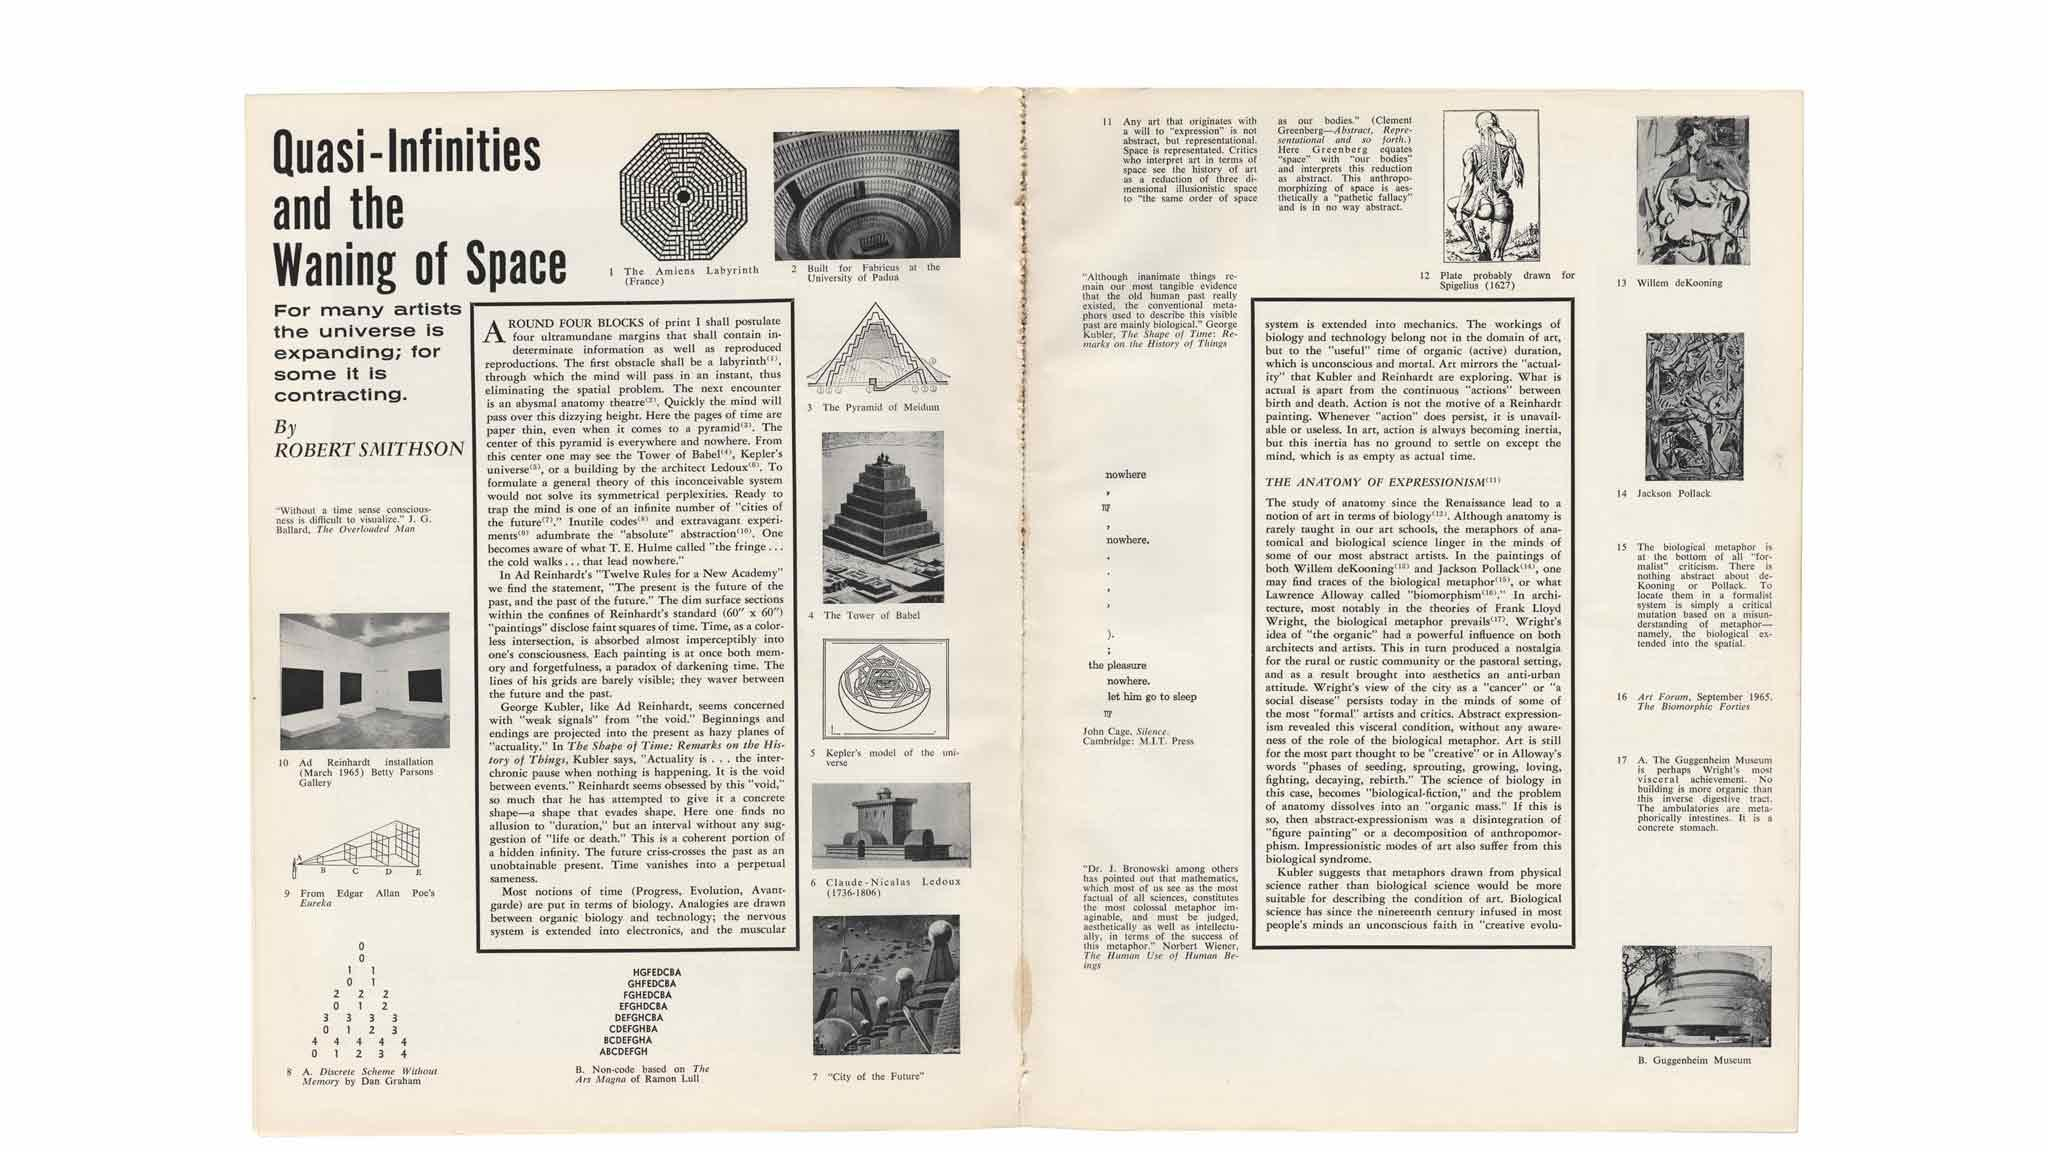 Two pages of Smithson's article Quasi-Infinities and the Waning of Space